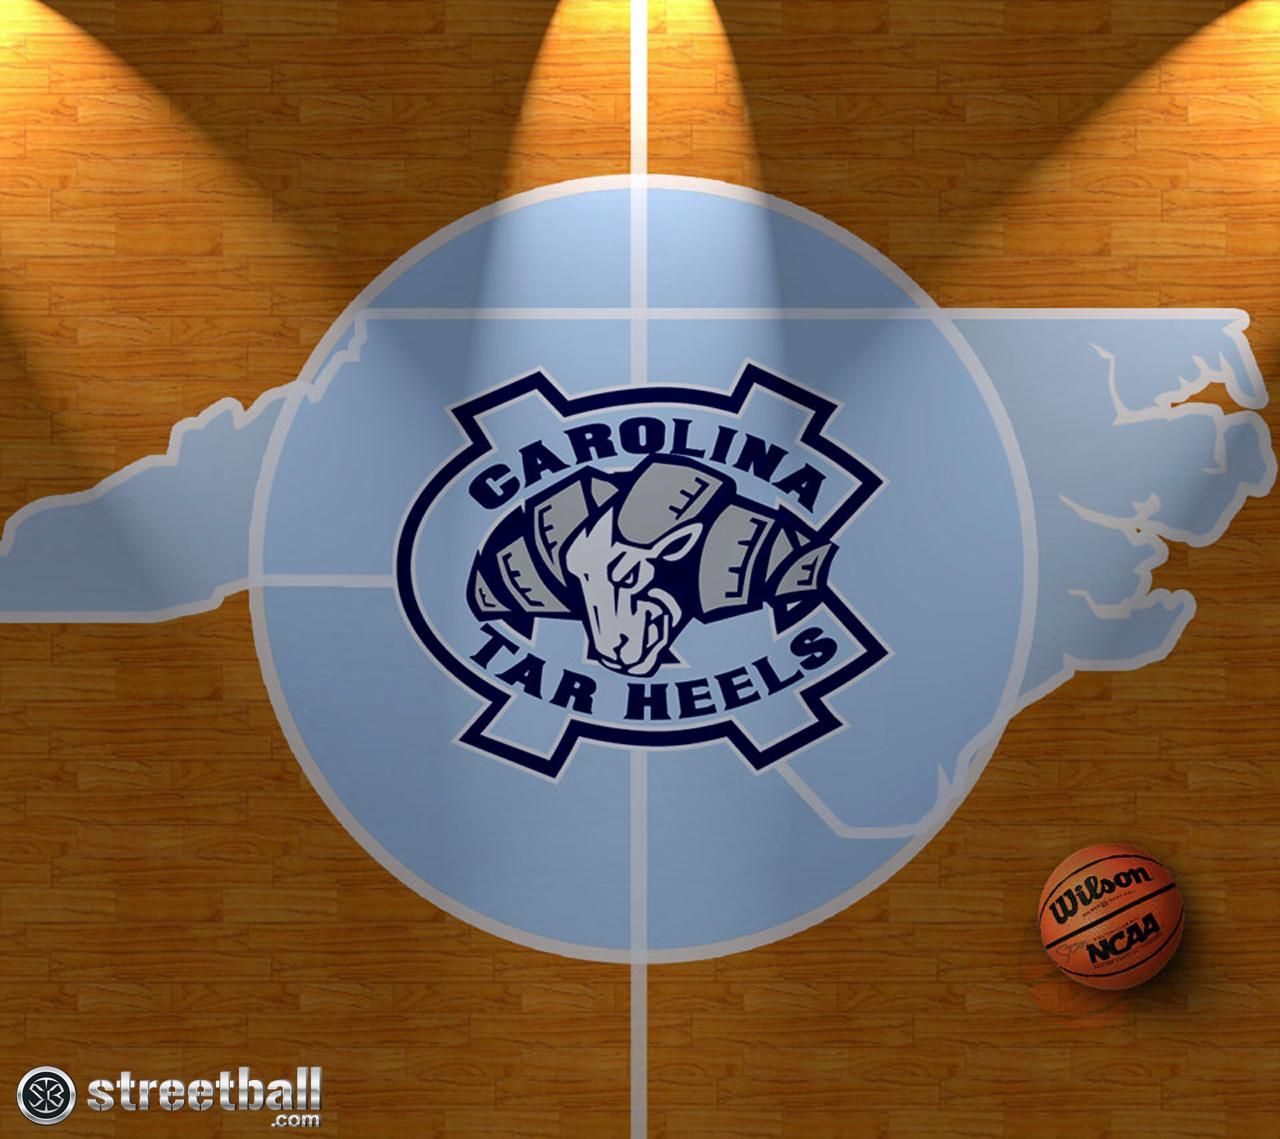 Unc Basketball Wallpaper